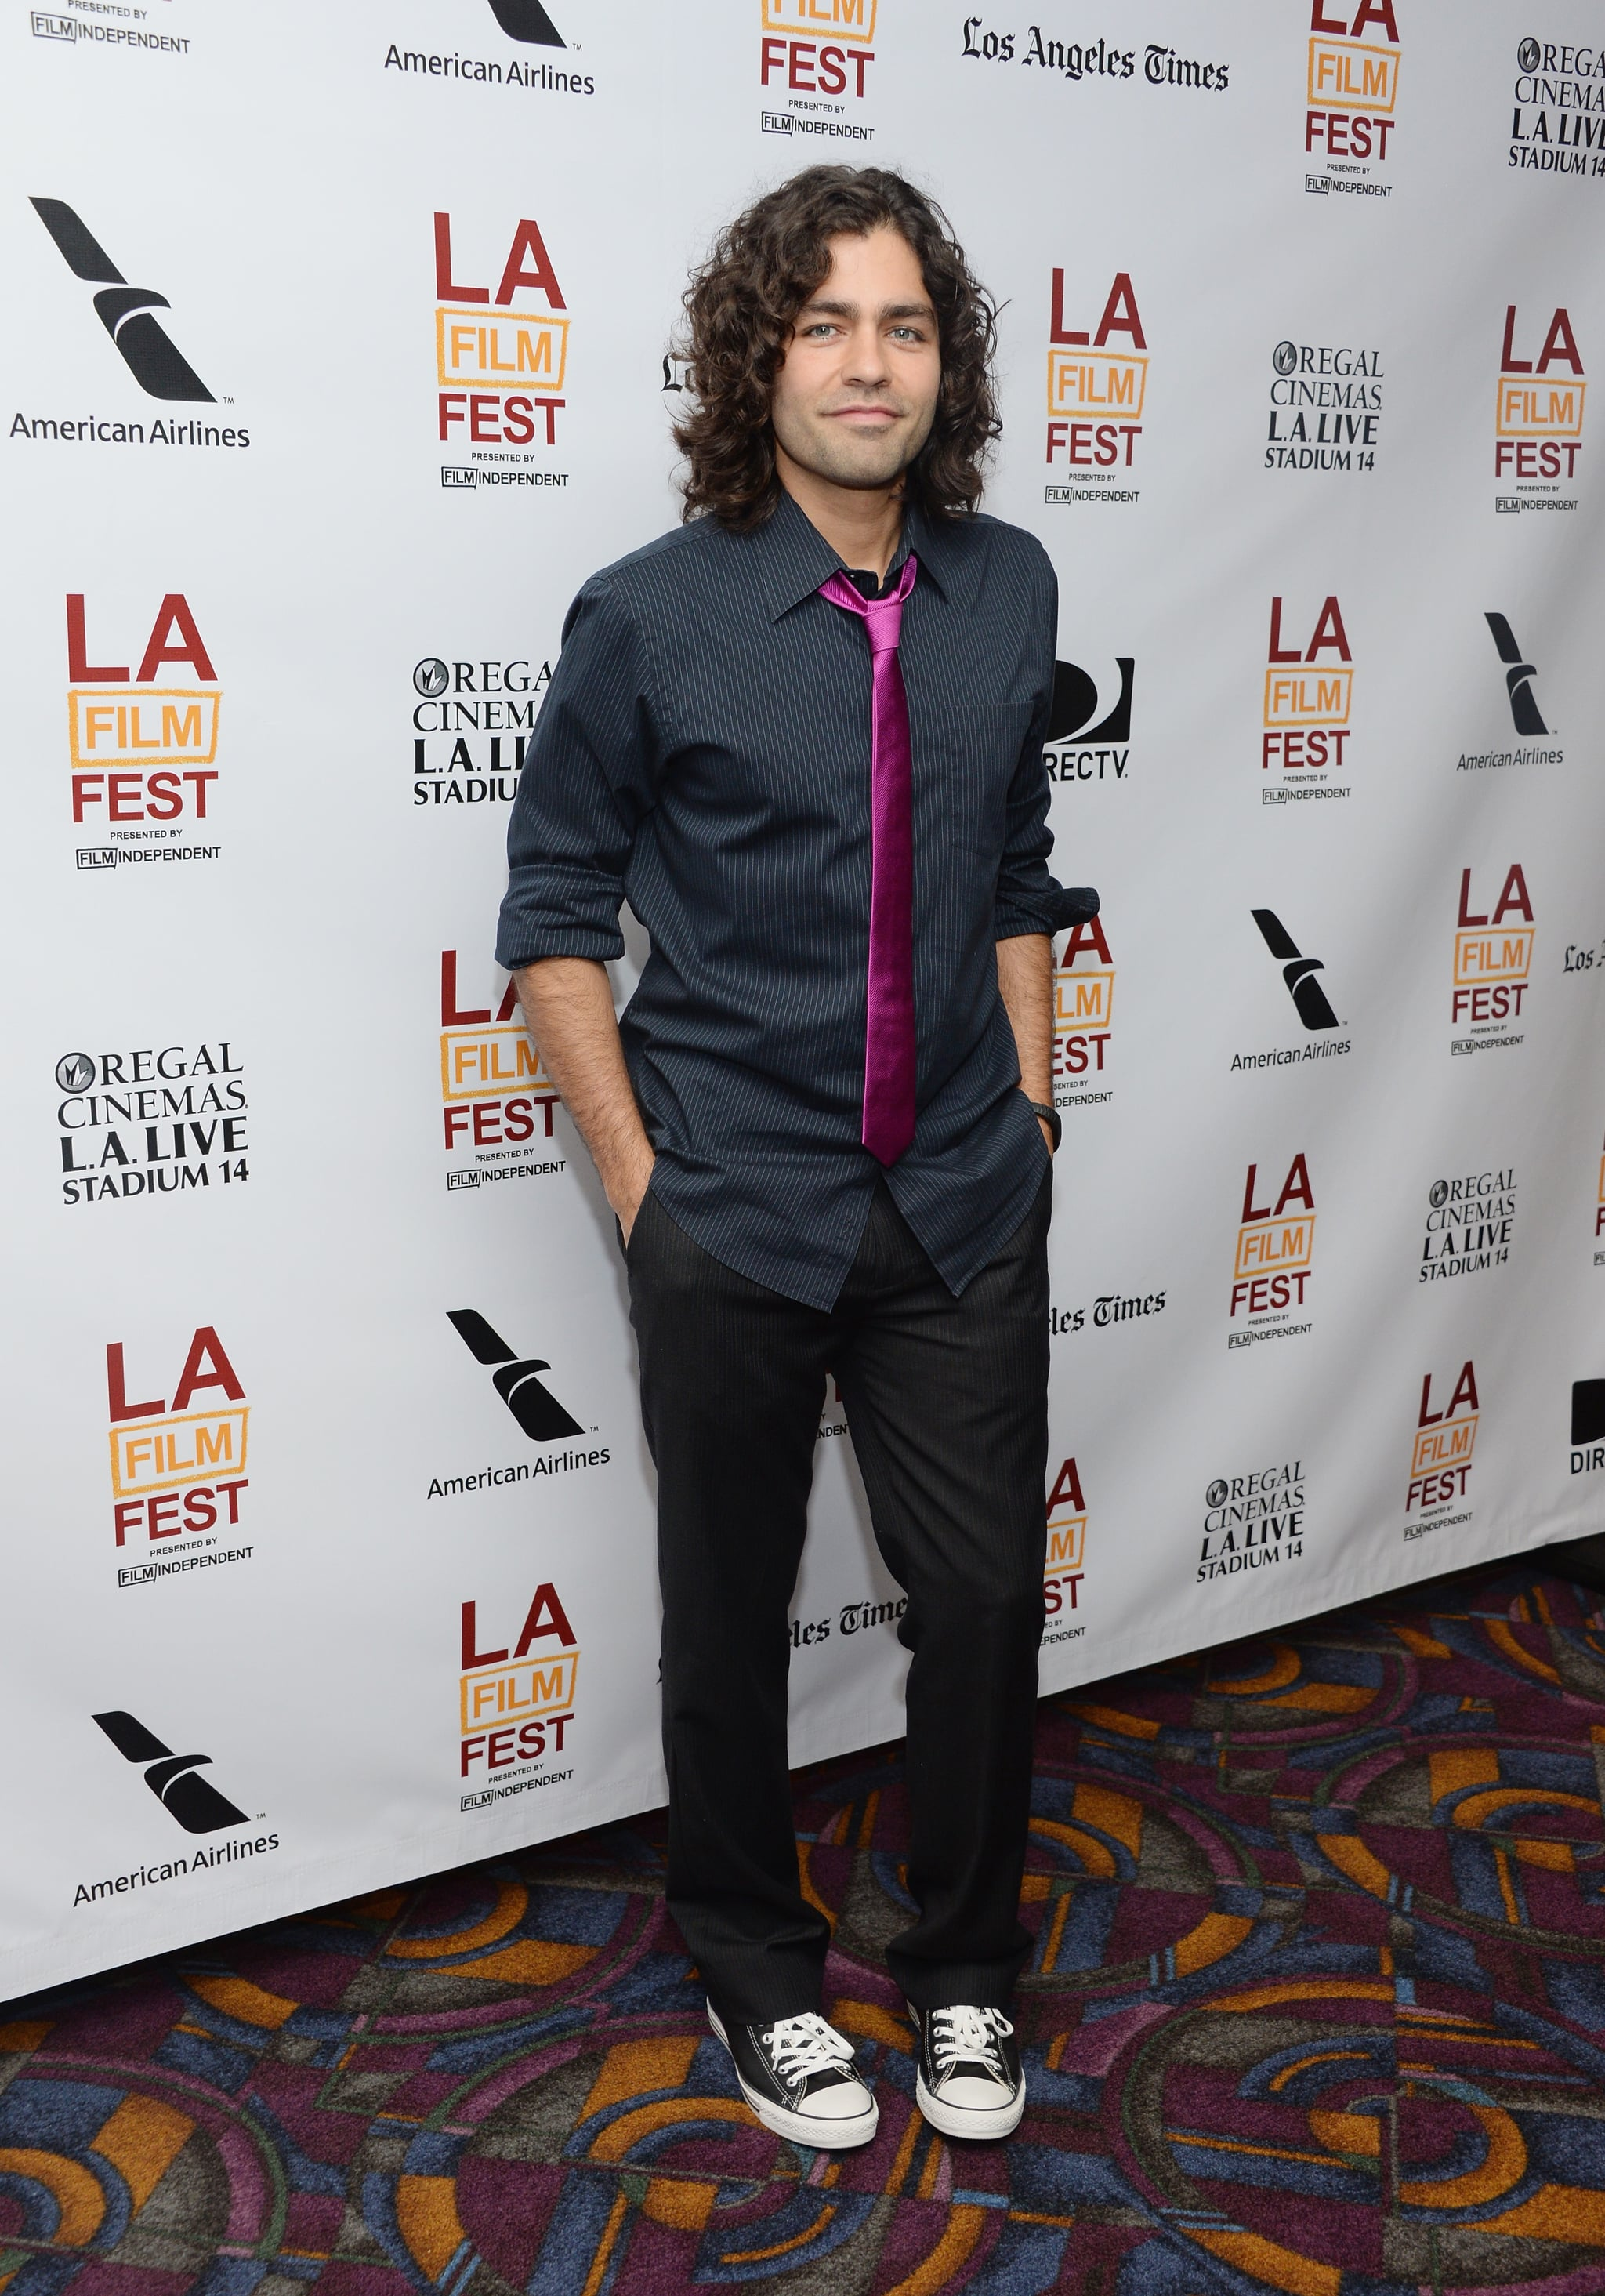 Adrian Grenier wore a pink tie for Goodbye World.